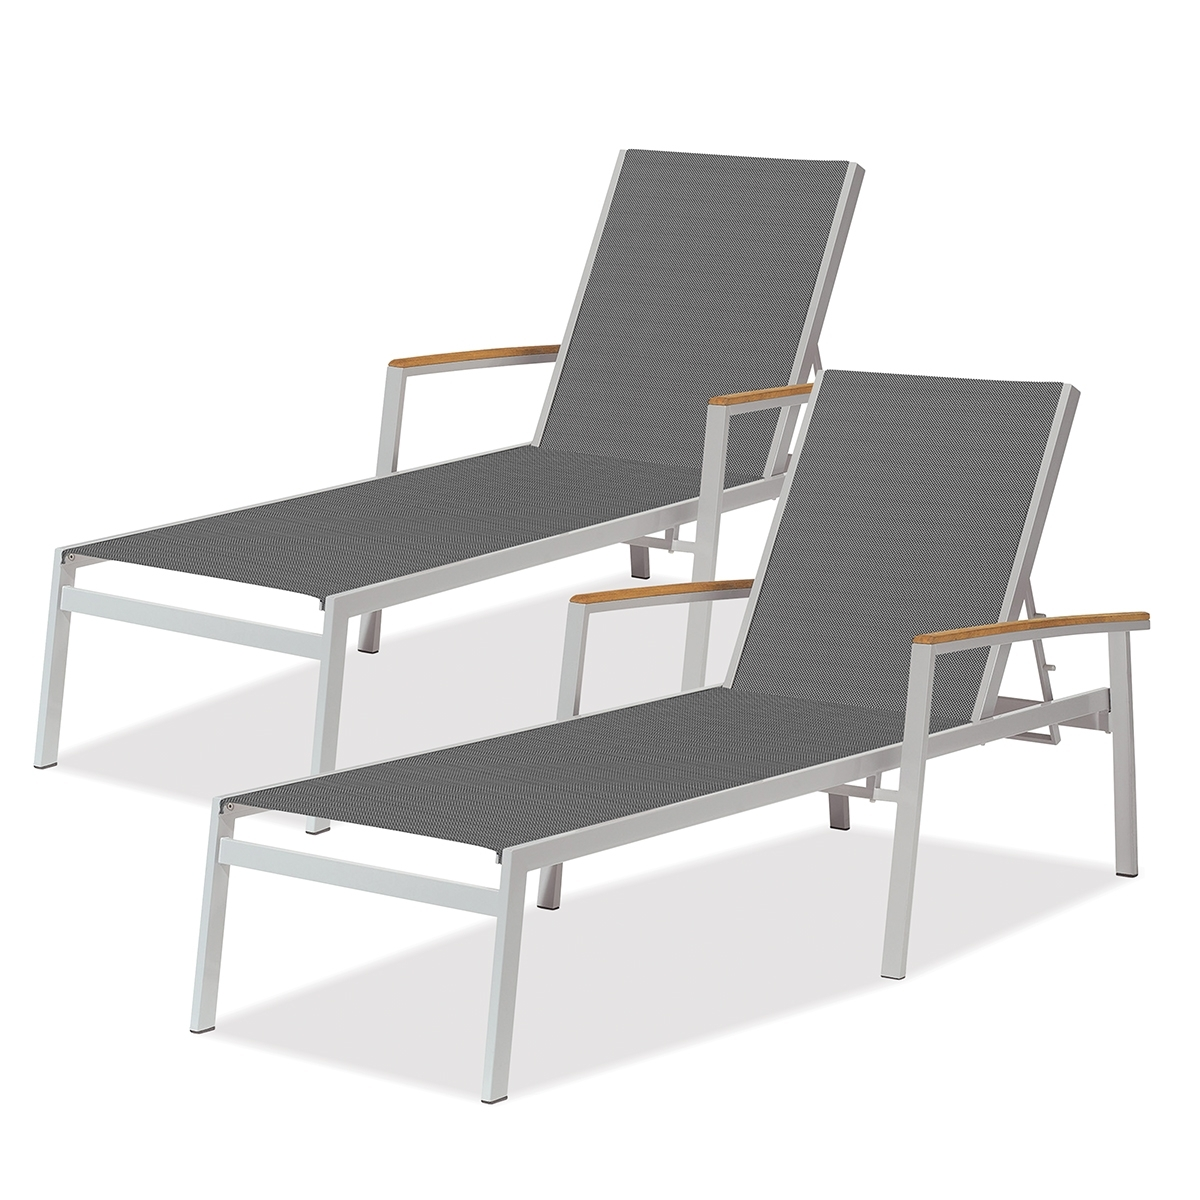 Madrone Regarding Fashionable Commercial Grade Chaise Lounge Chairs (View 8 of 15)